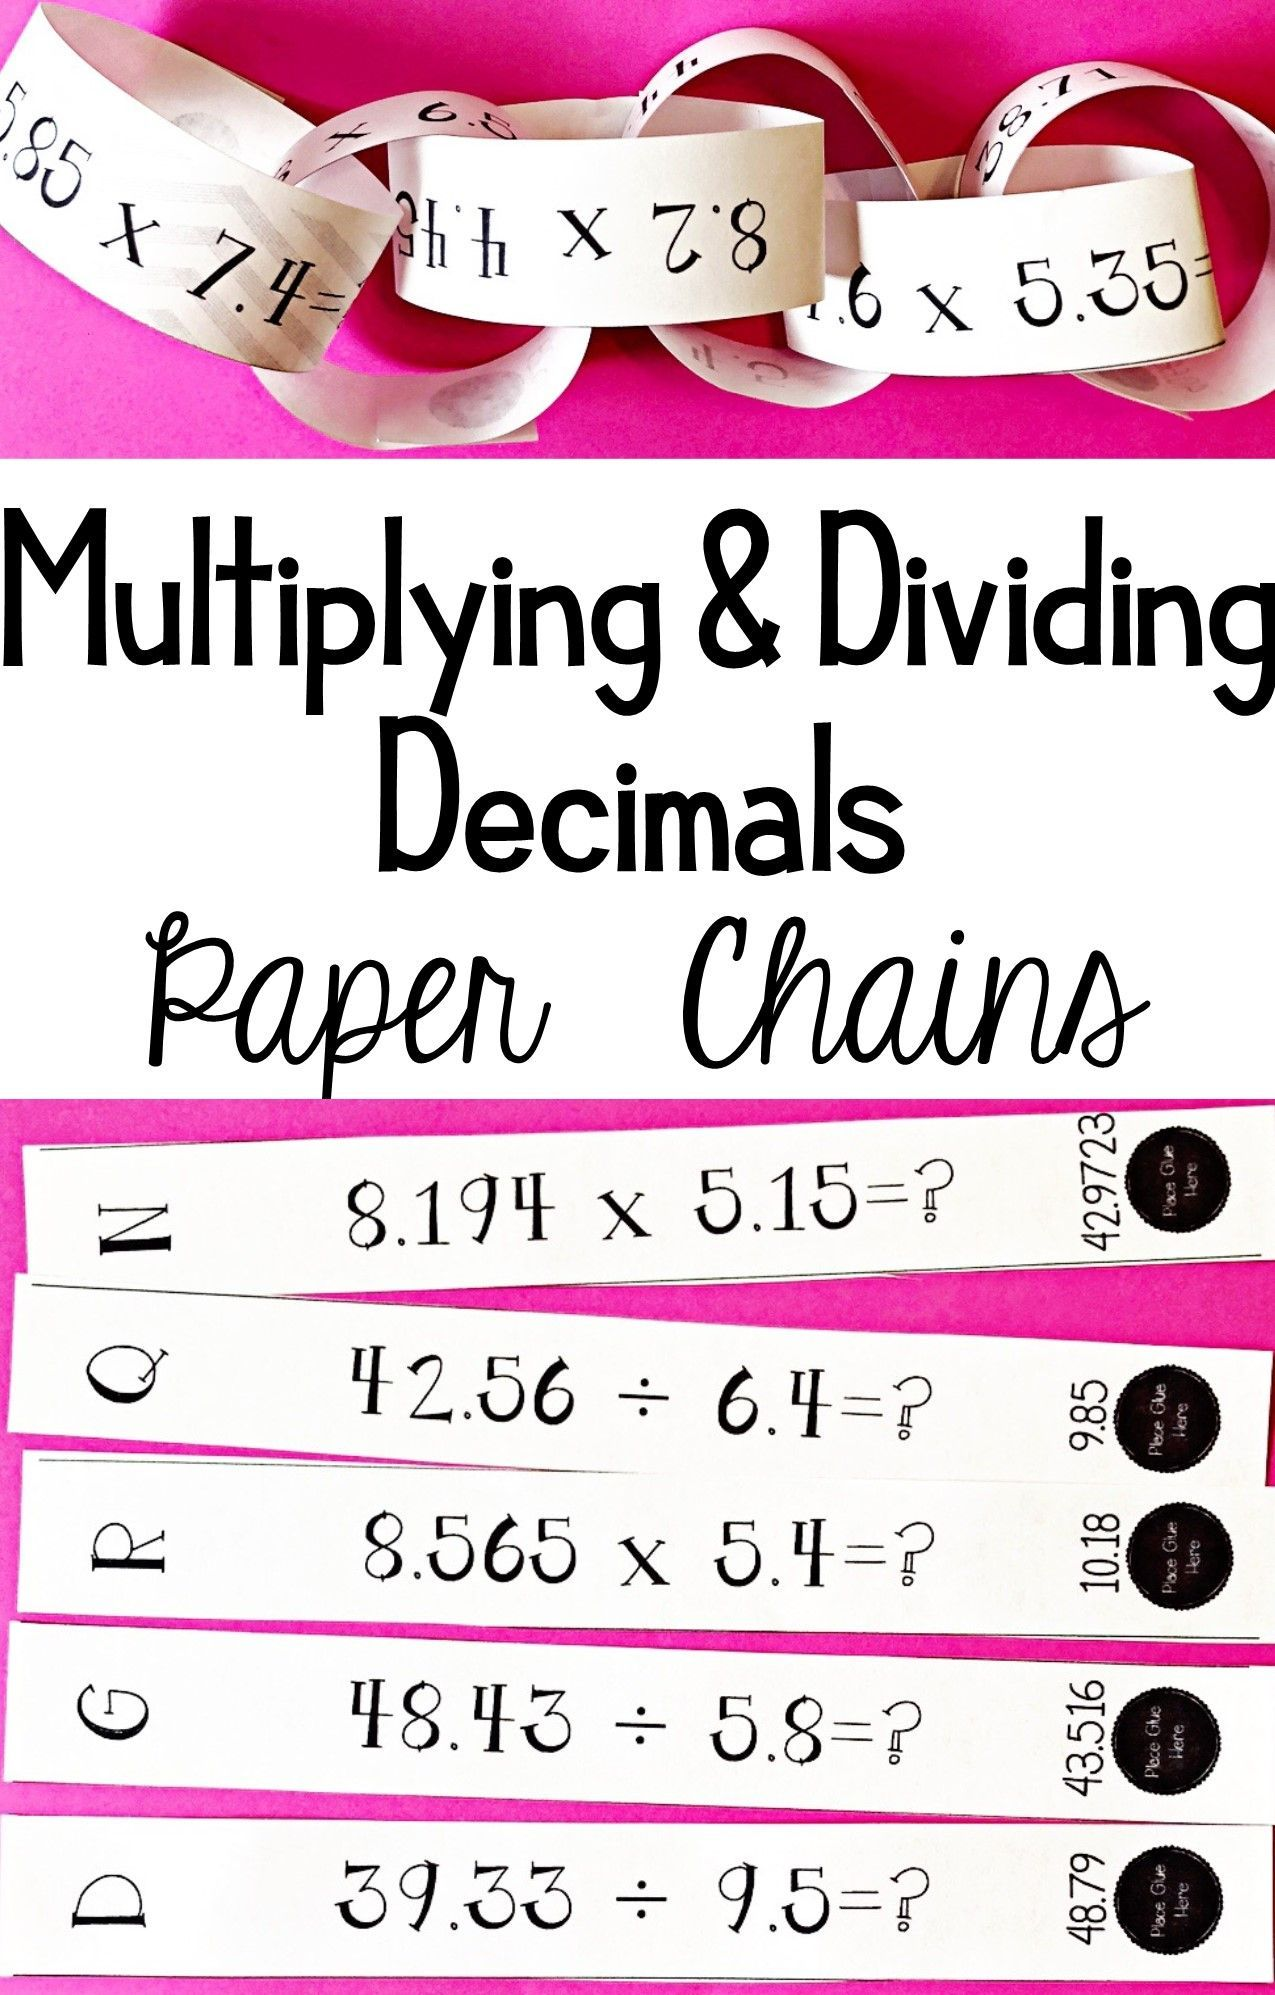 Multiplying & Dividing Decimals - Chain Activity | 6th Grade Math ...